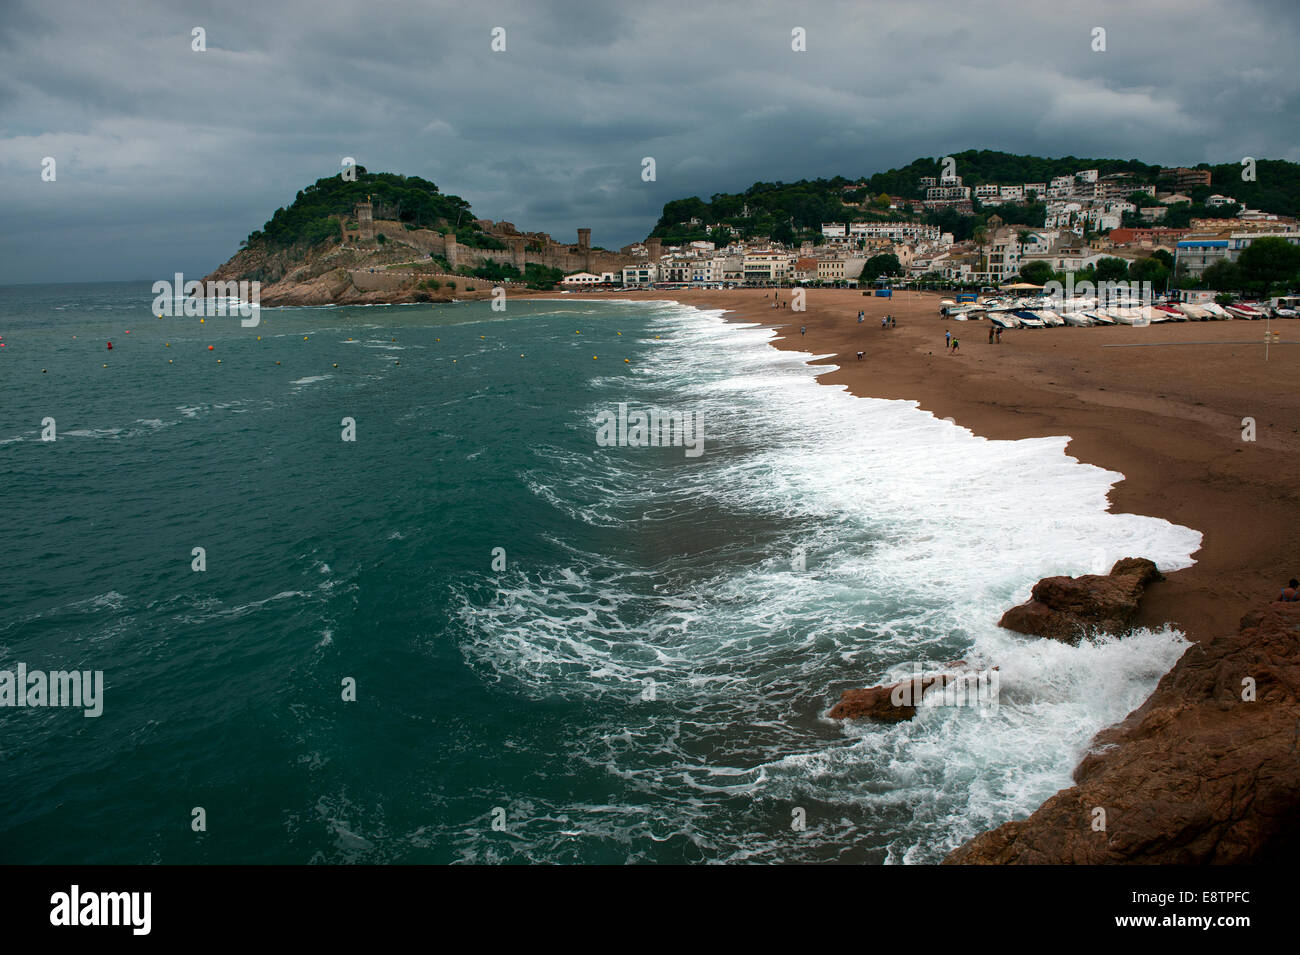 Spain Catalonia. Tossa de Mar showing the castle above the bay. Sept 2014 - Stock Image